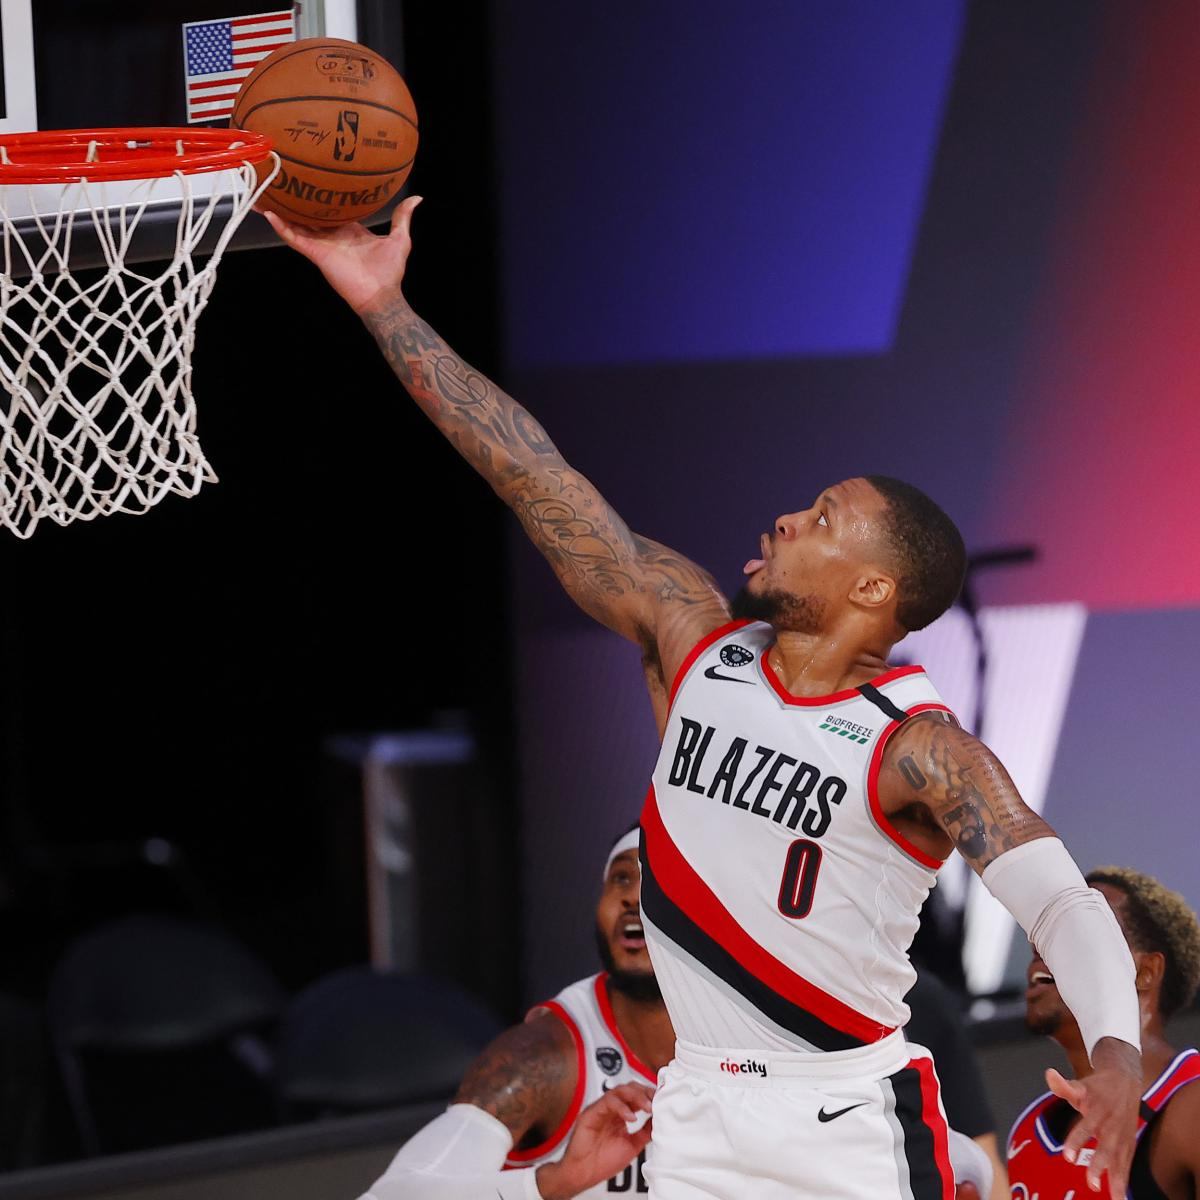 Report: Damian Lillard's Knee Injury Not a Long-Term Concern for Trail Blazers